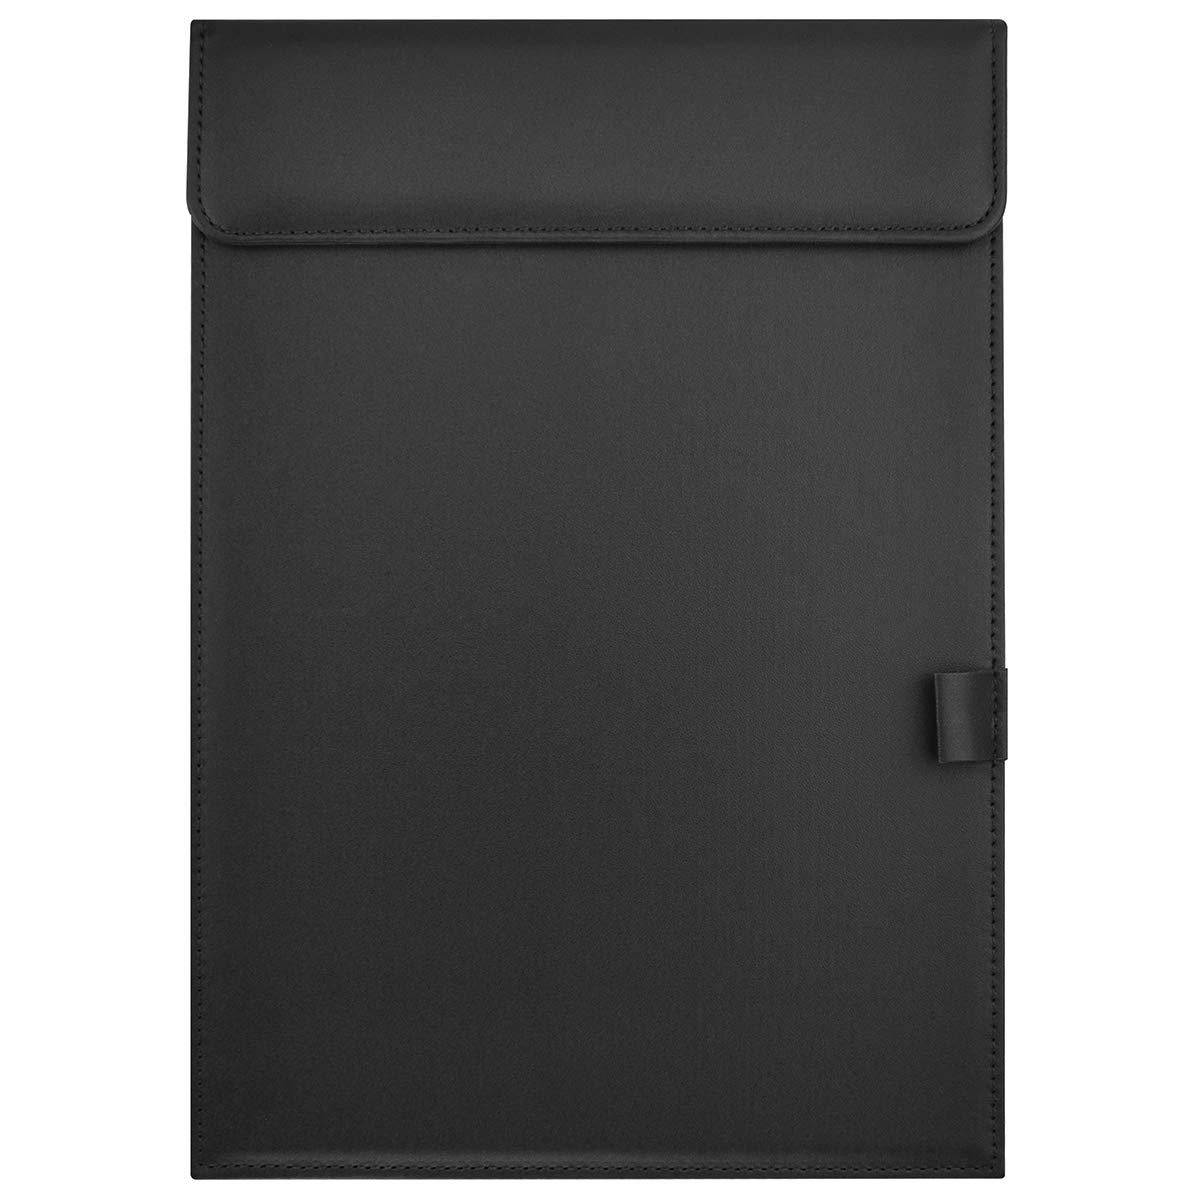 Leather Folder, Zubita Professional Document Holder Notepads and Writing Pads Padfolio Folder for Resumes Interviews and Meetings ( Black ) by Zubita (Image #1)